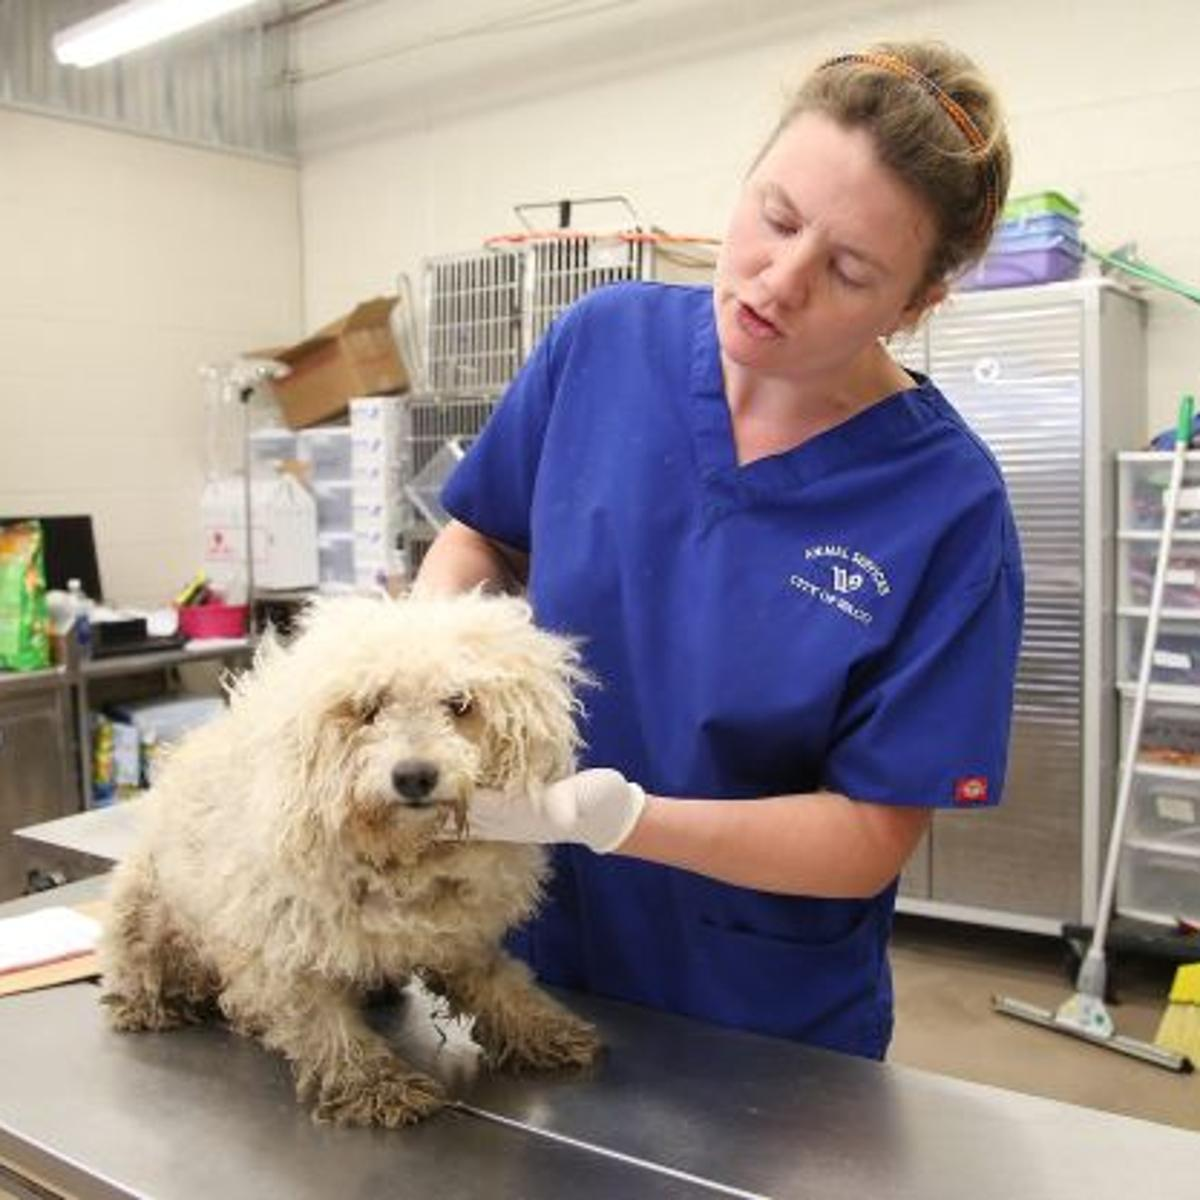 40 Waco shelter dogs euthanized after rabies exposure